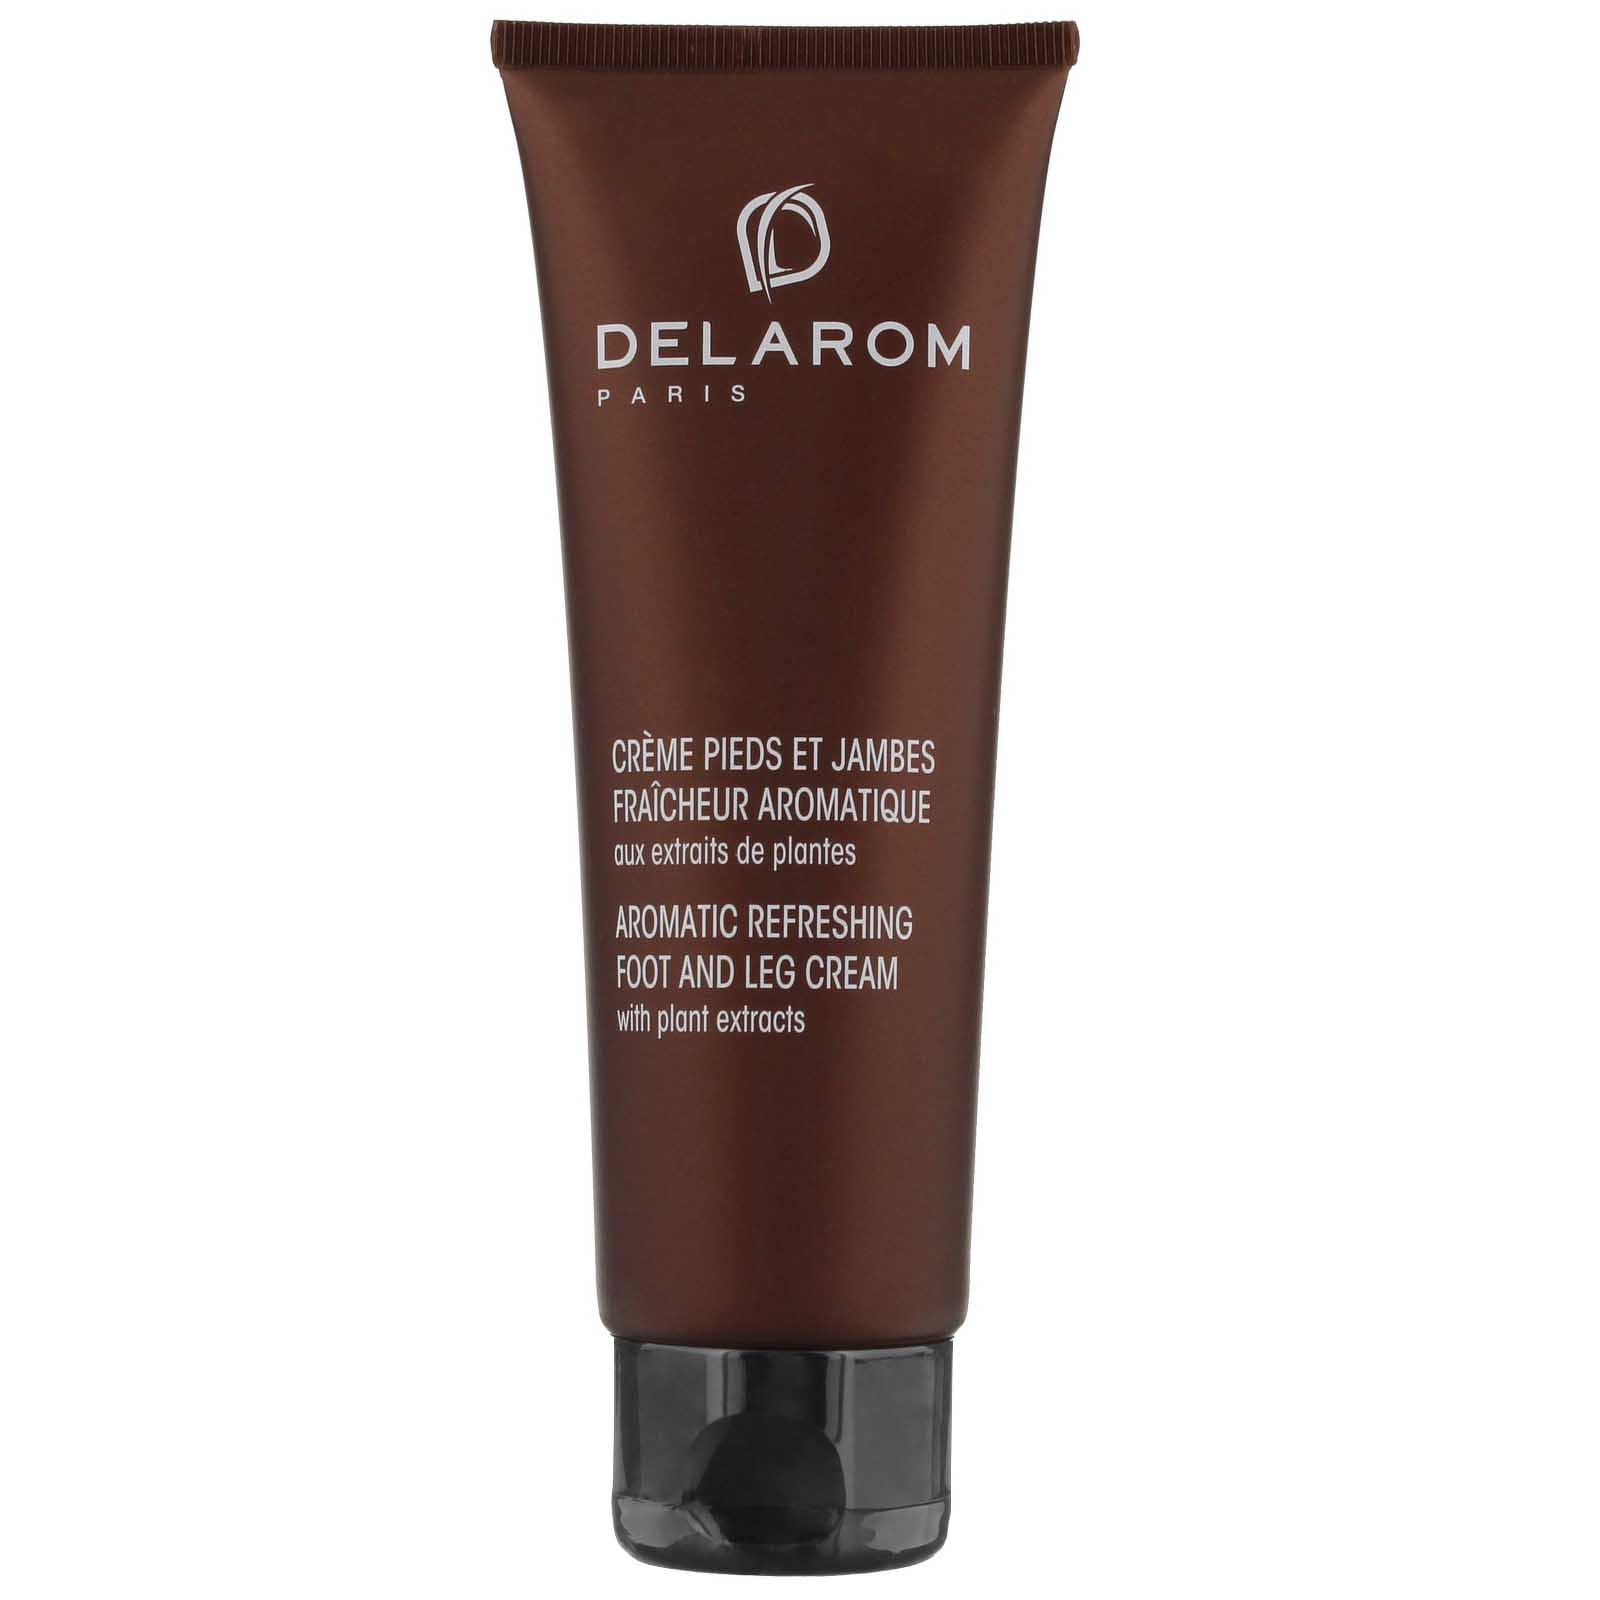 DELAROM Body & Well-Being Aromatic Refreshing Foot and Leg Cream 125ml